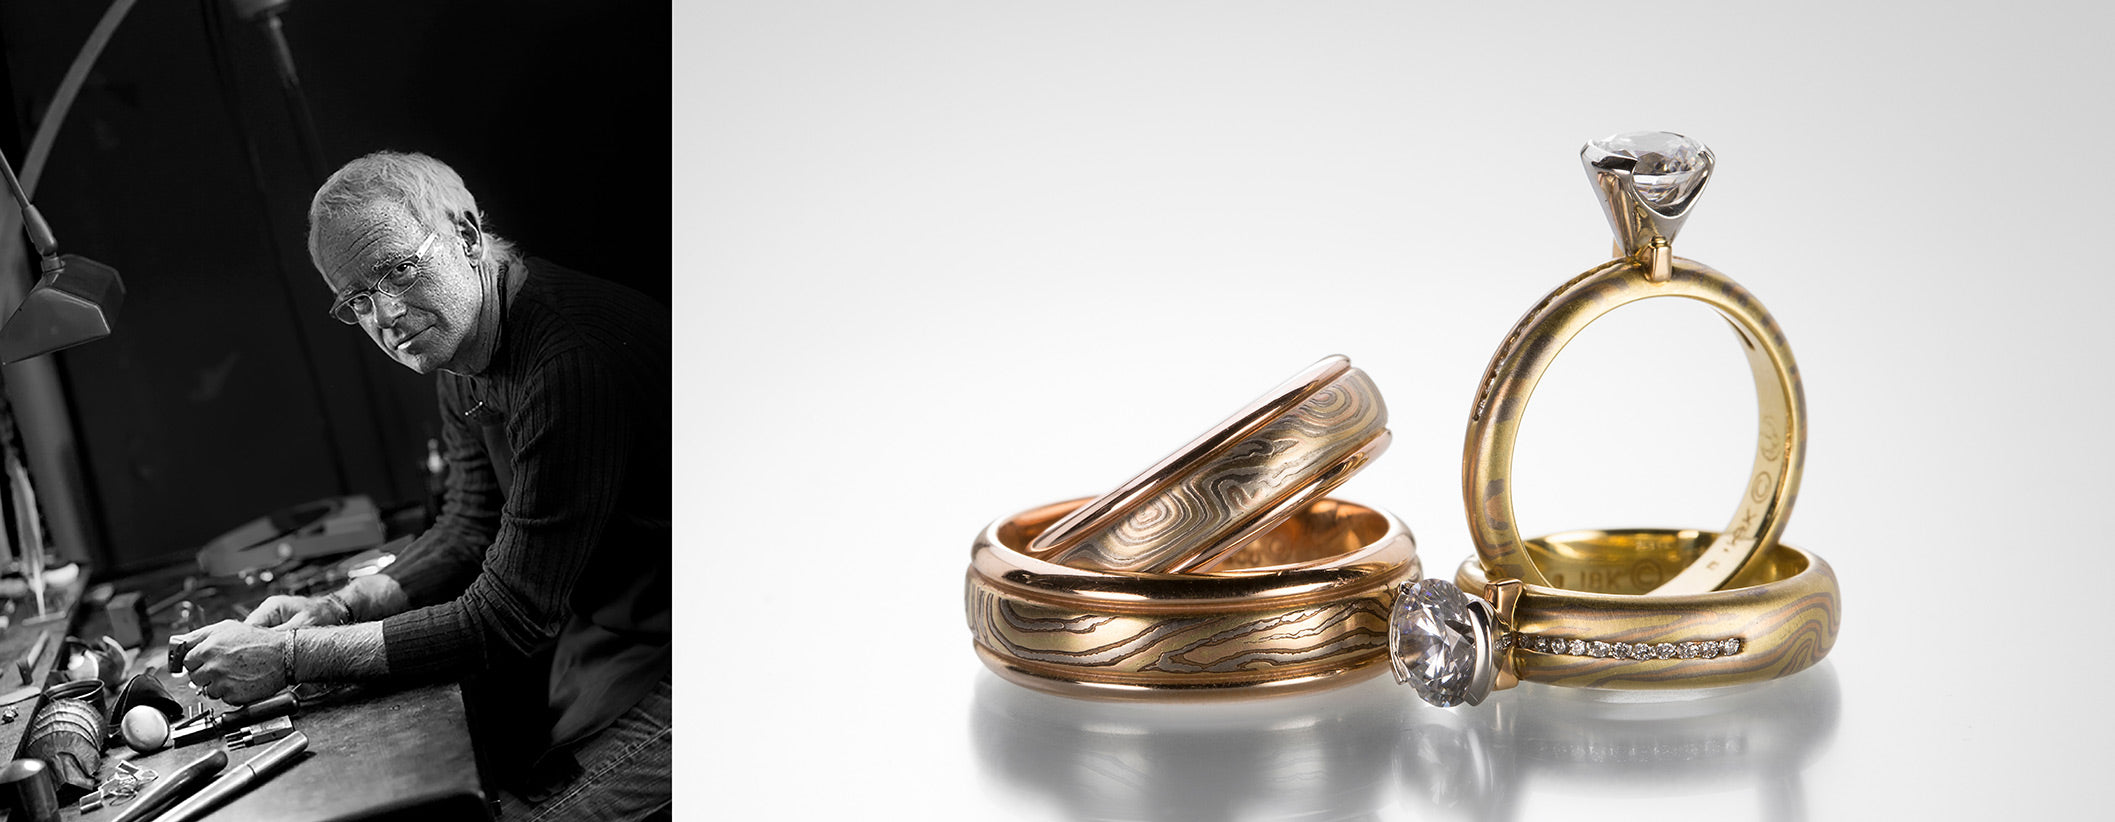 George Sawyer | Designer Jewelry | Shop George Sawyer jewelry at Quadrum, located in the Greater Boston Area, featuring a collection of women and men's mokume gane wedding bands and mokume gane engagement rings.